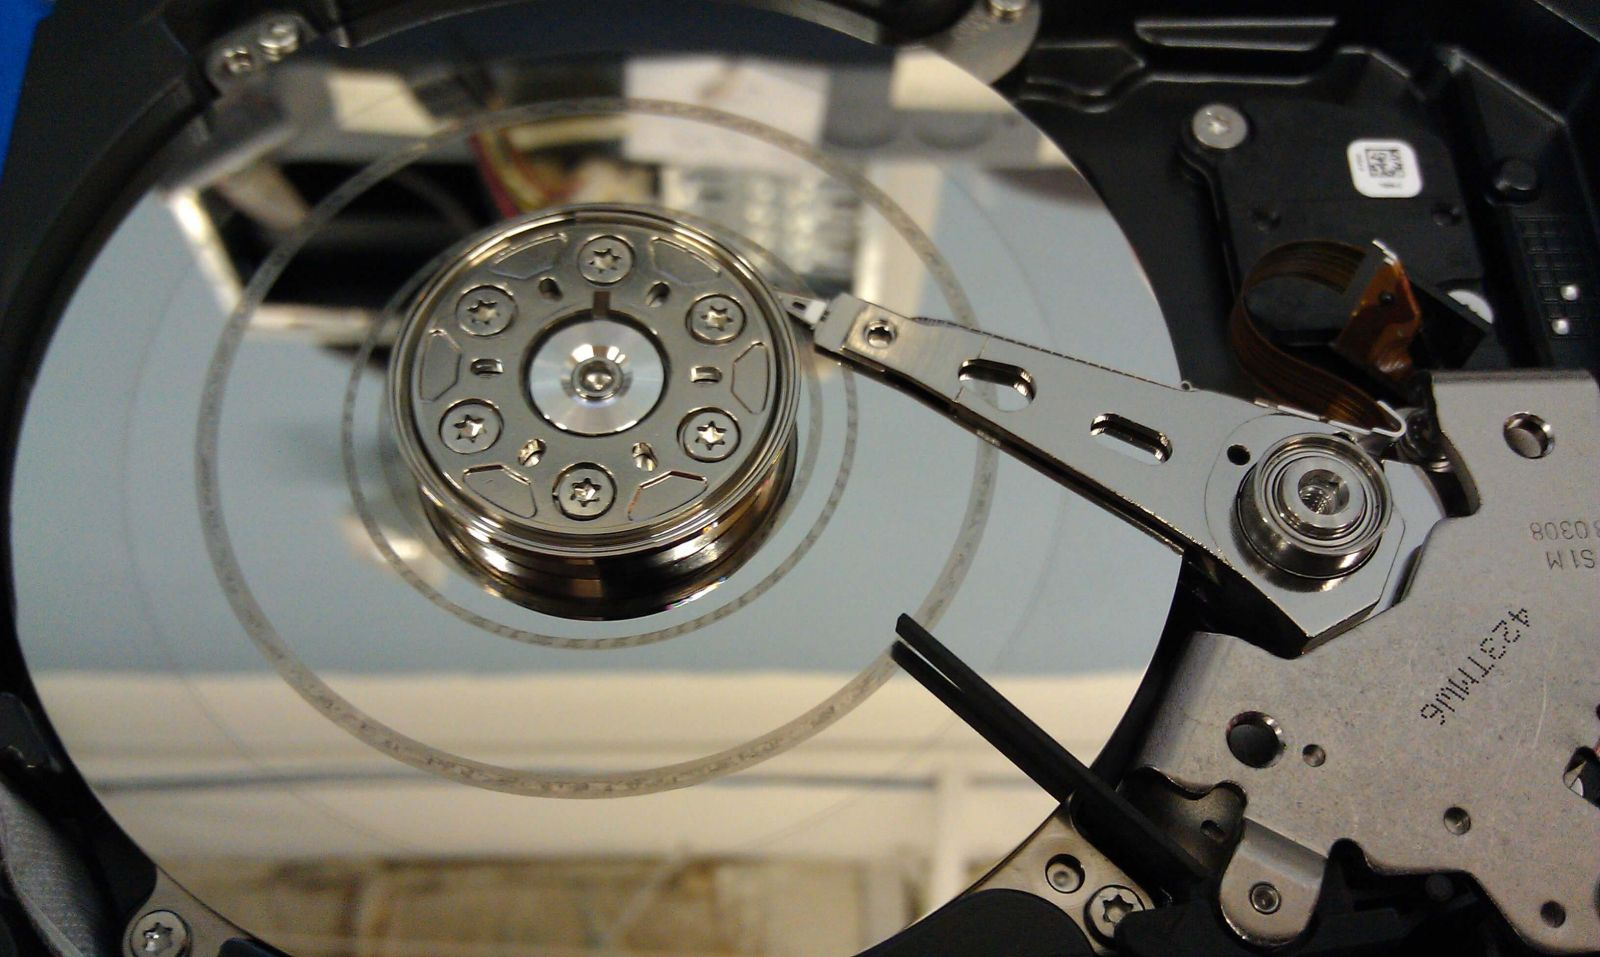 head crash is a cause of hard drive failure